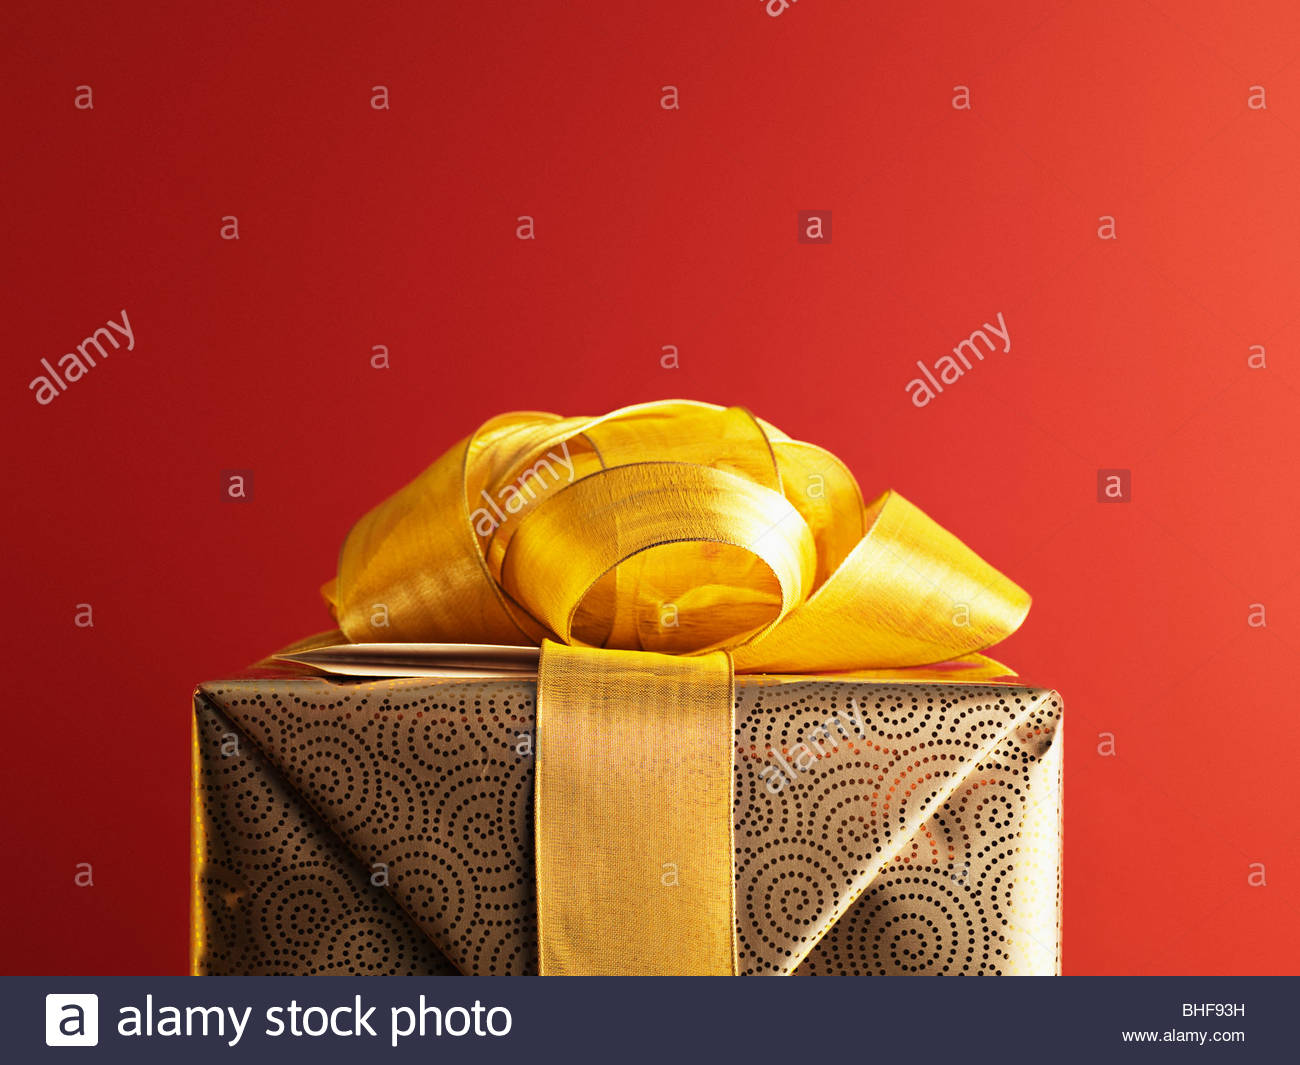 Cadeau de Noël du ruban d'or avec Photo Stock